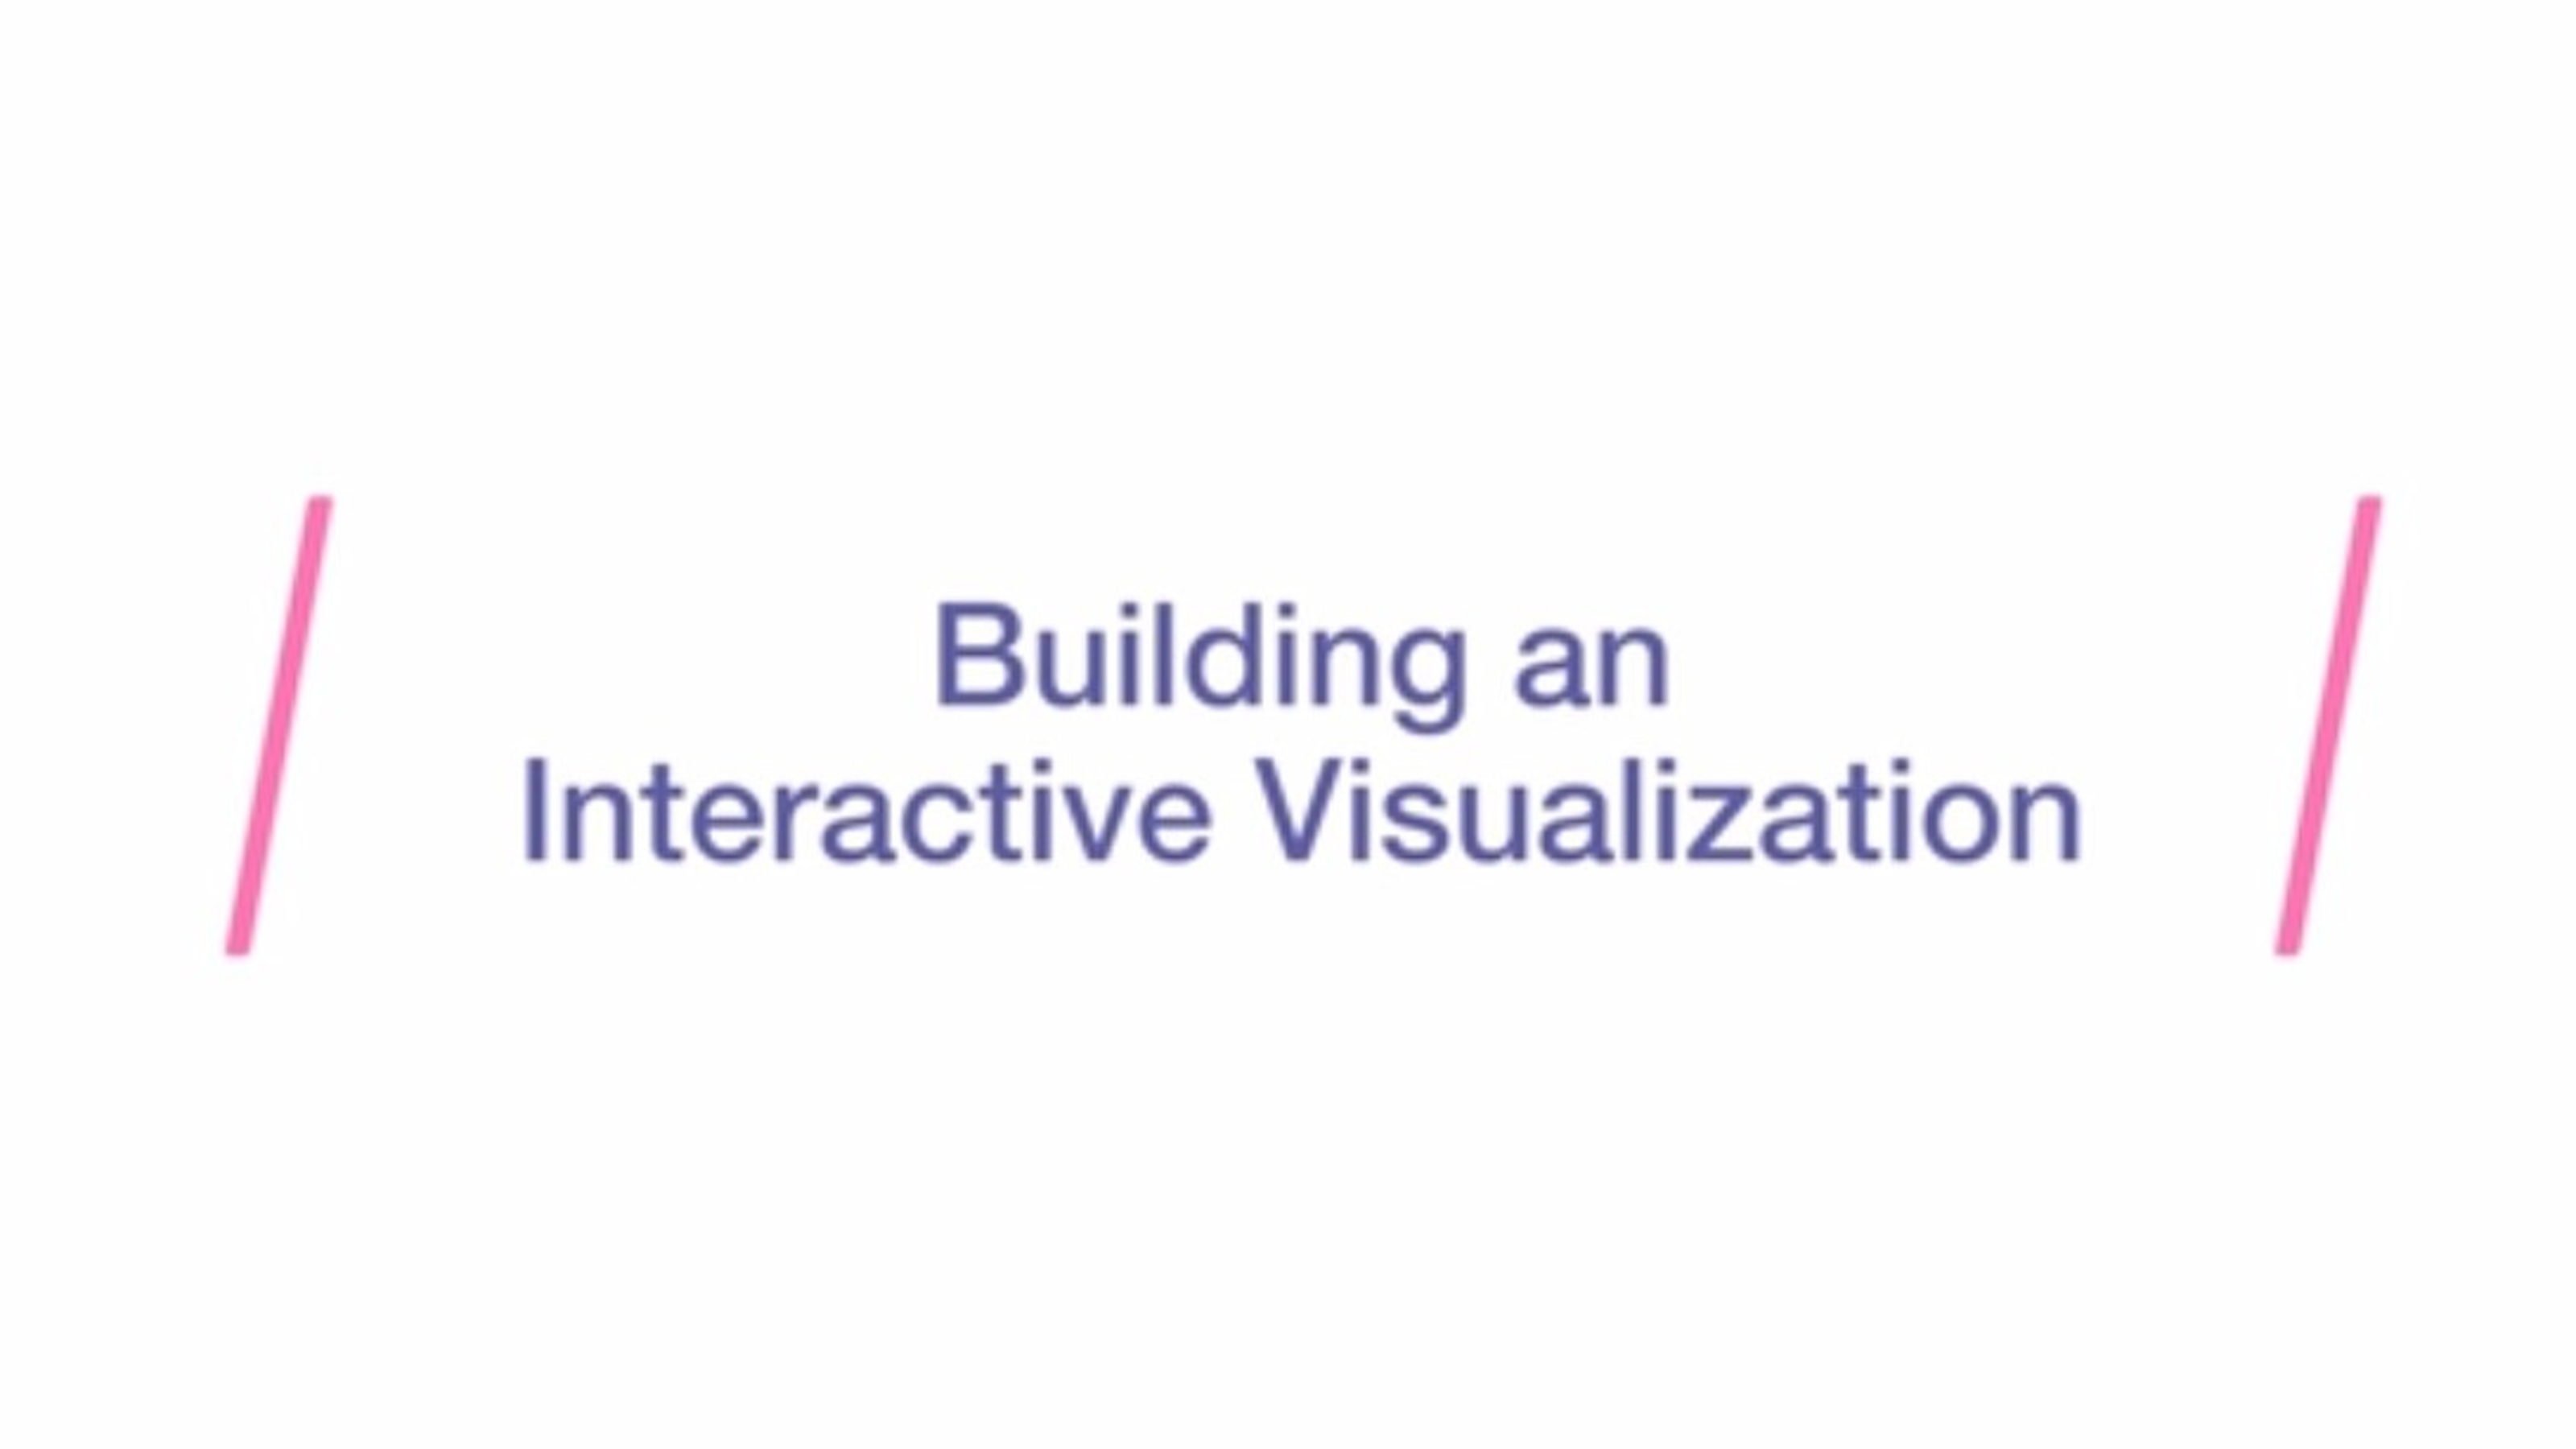 """Presentation title slide. """"Building an interactive visualization"""" in purple text with pink accent graphics."""